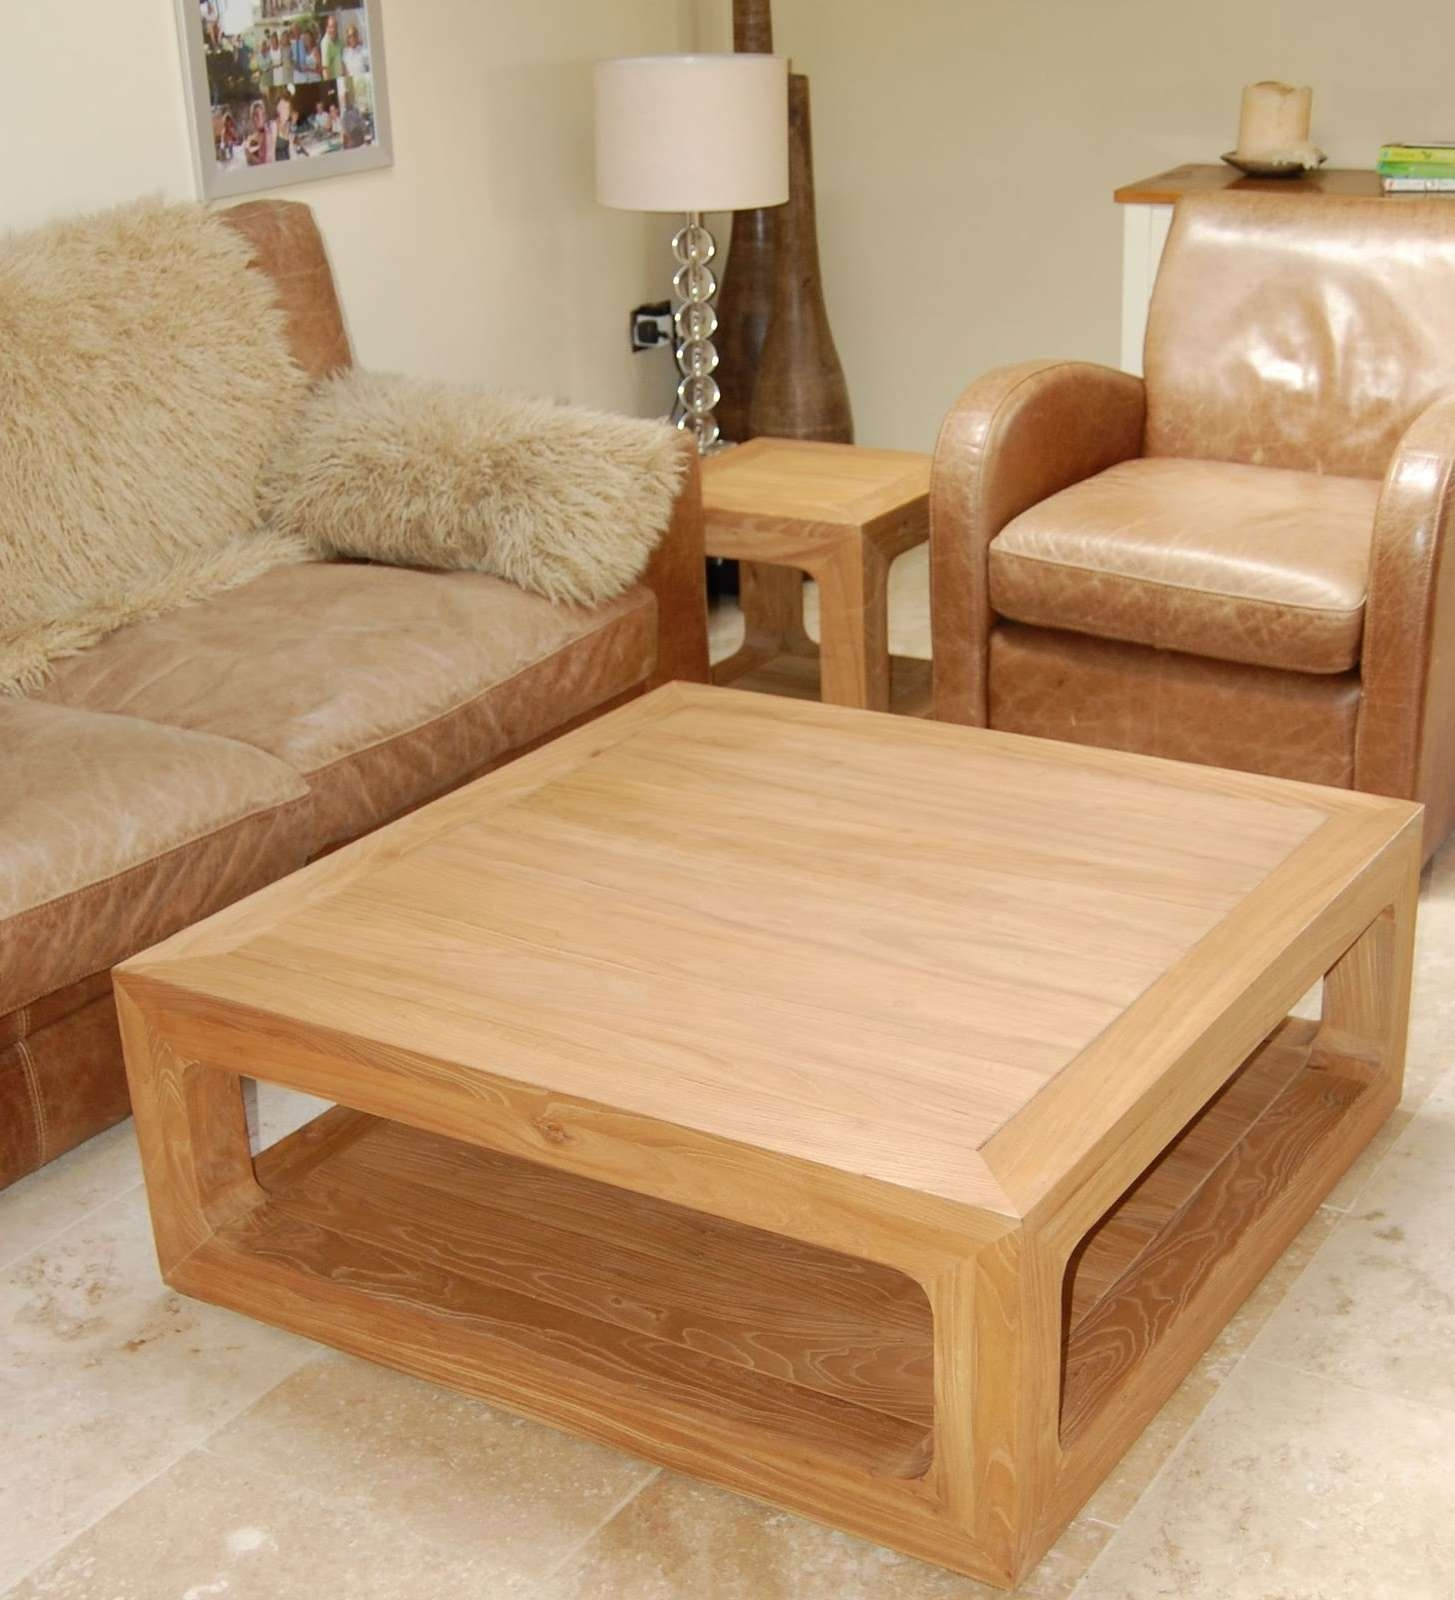 2018 Coffee Table Rounded Corners Throughout Square Coffee Table Rounded Corners • Table Ideas (View 2 of 20)